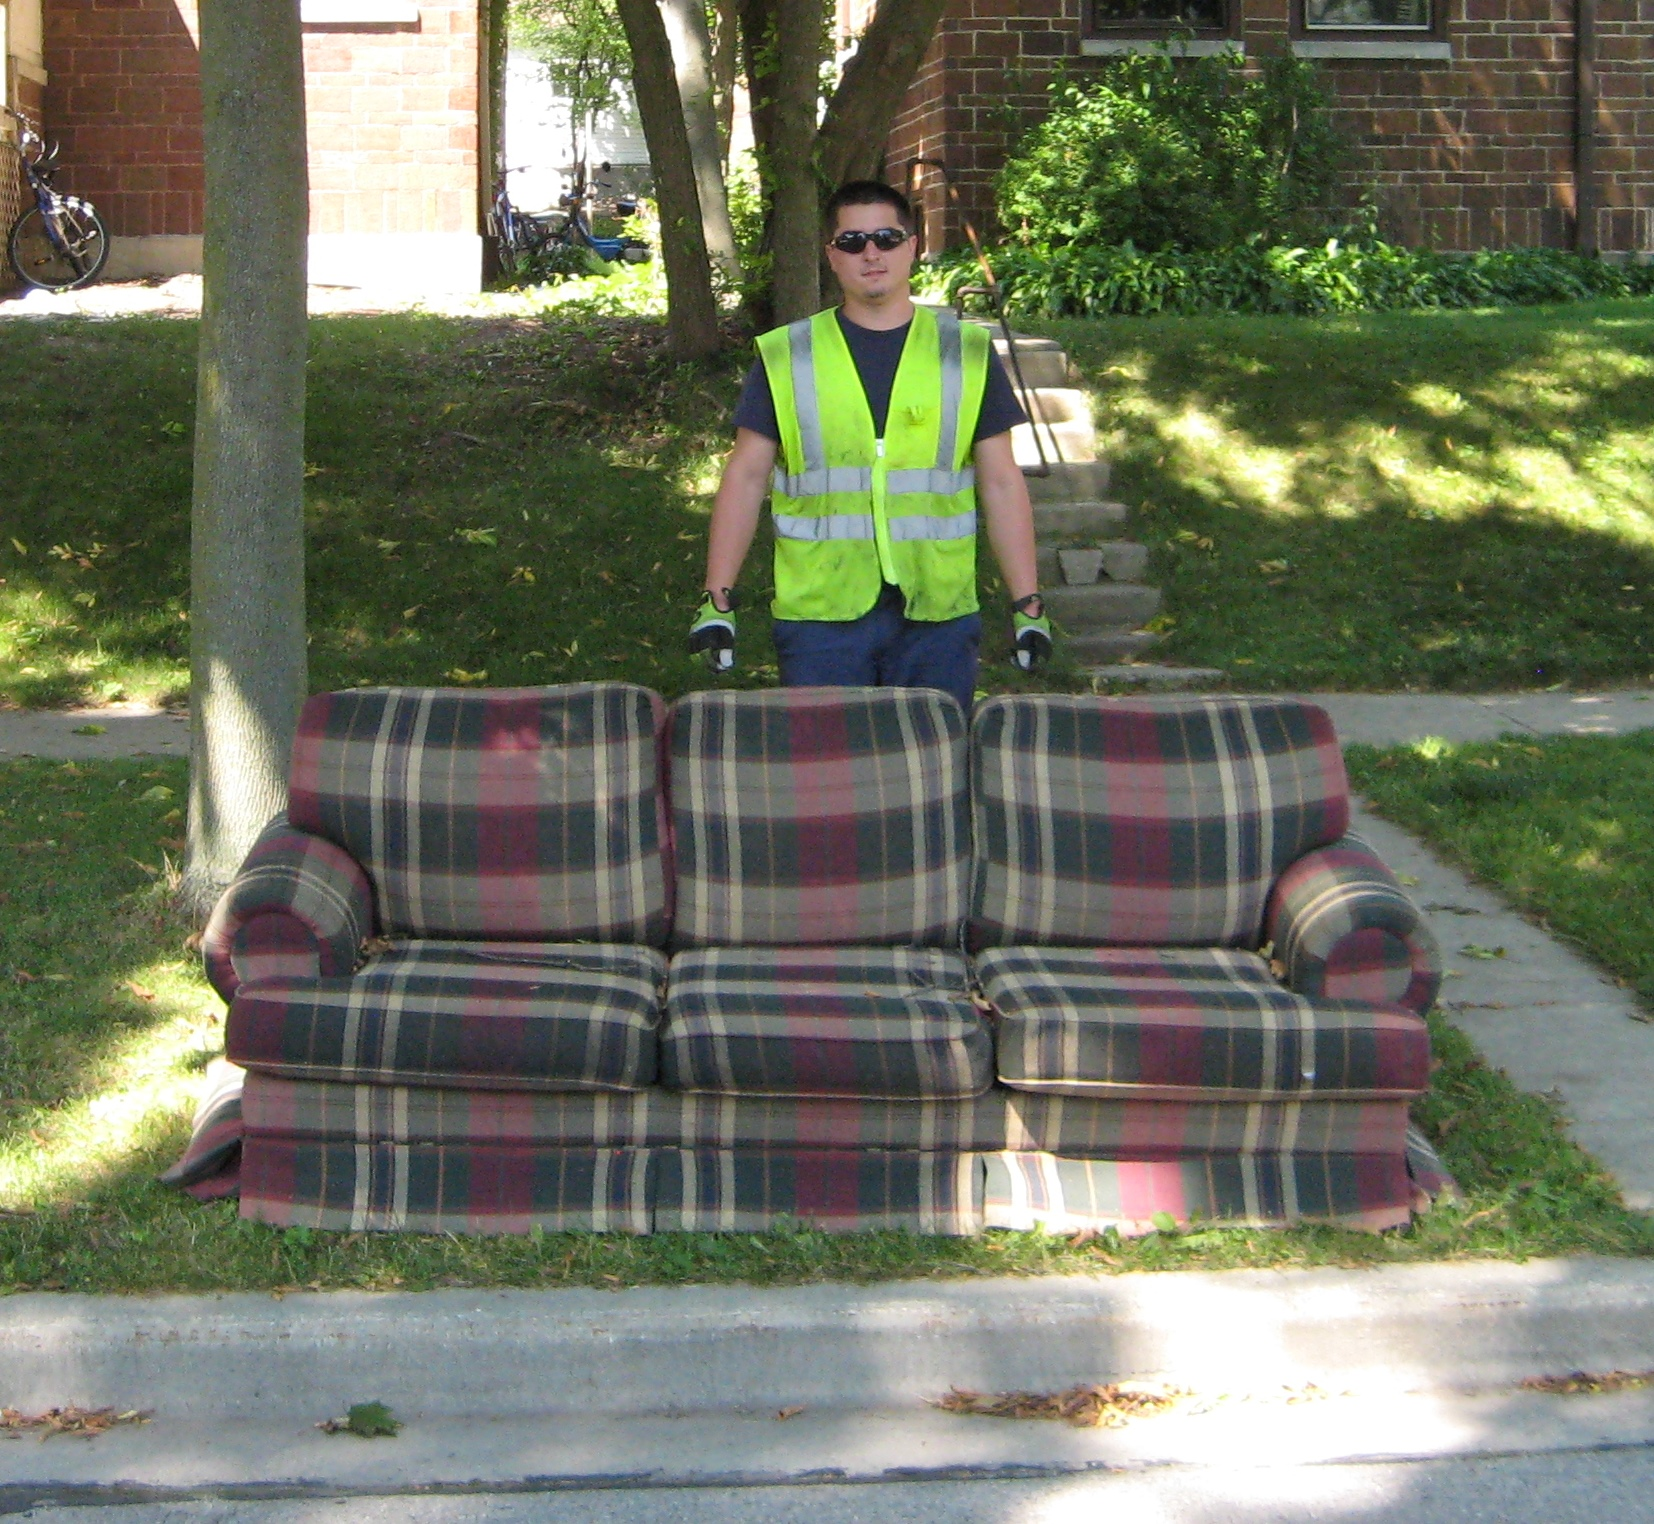 couch at curb